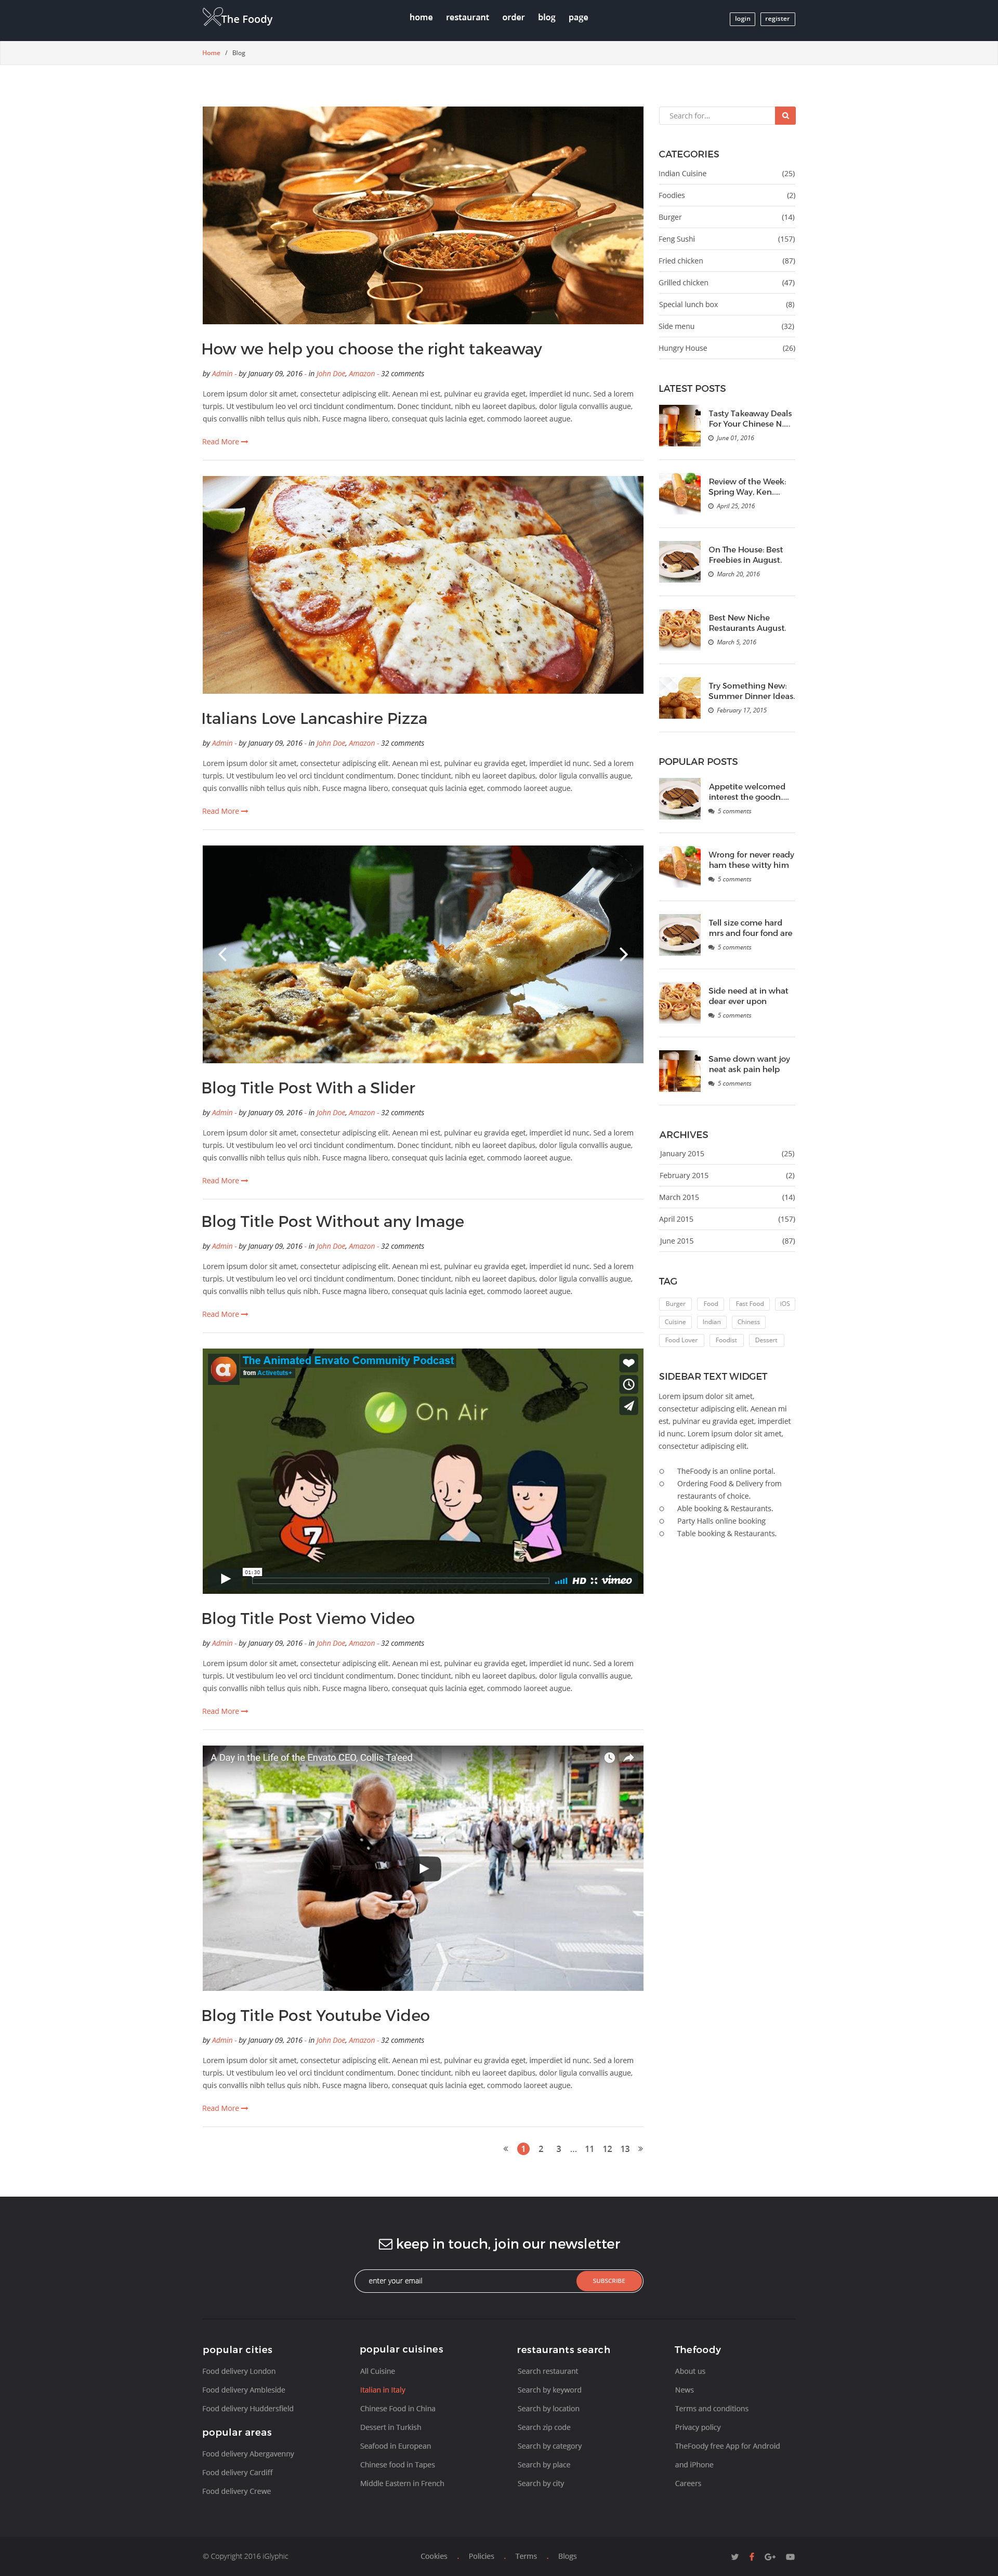 Thefoody Multiple Restaurant System Psd Template By Iglyphic